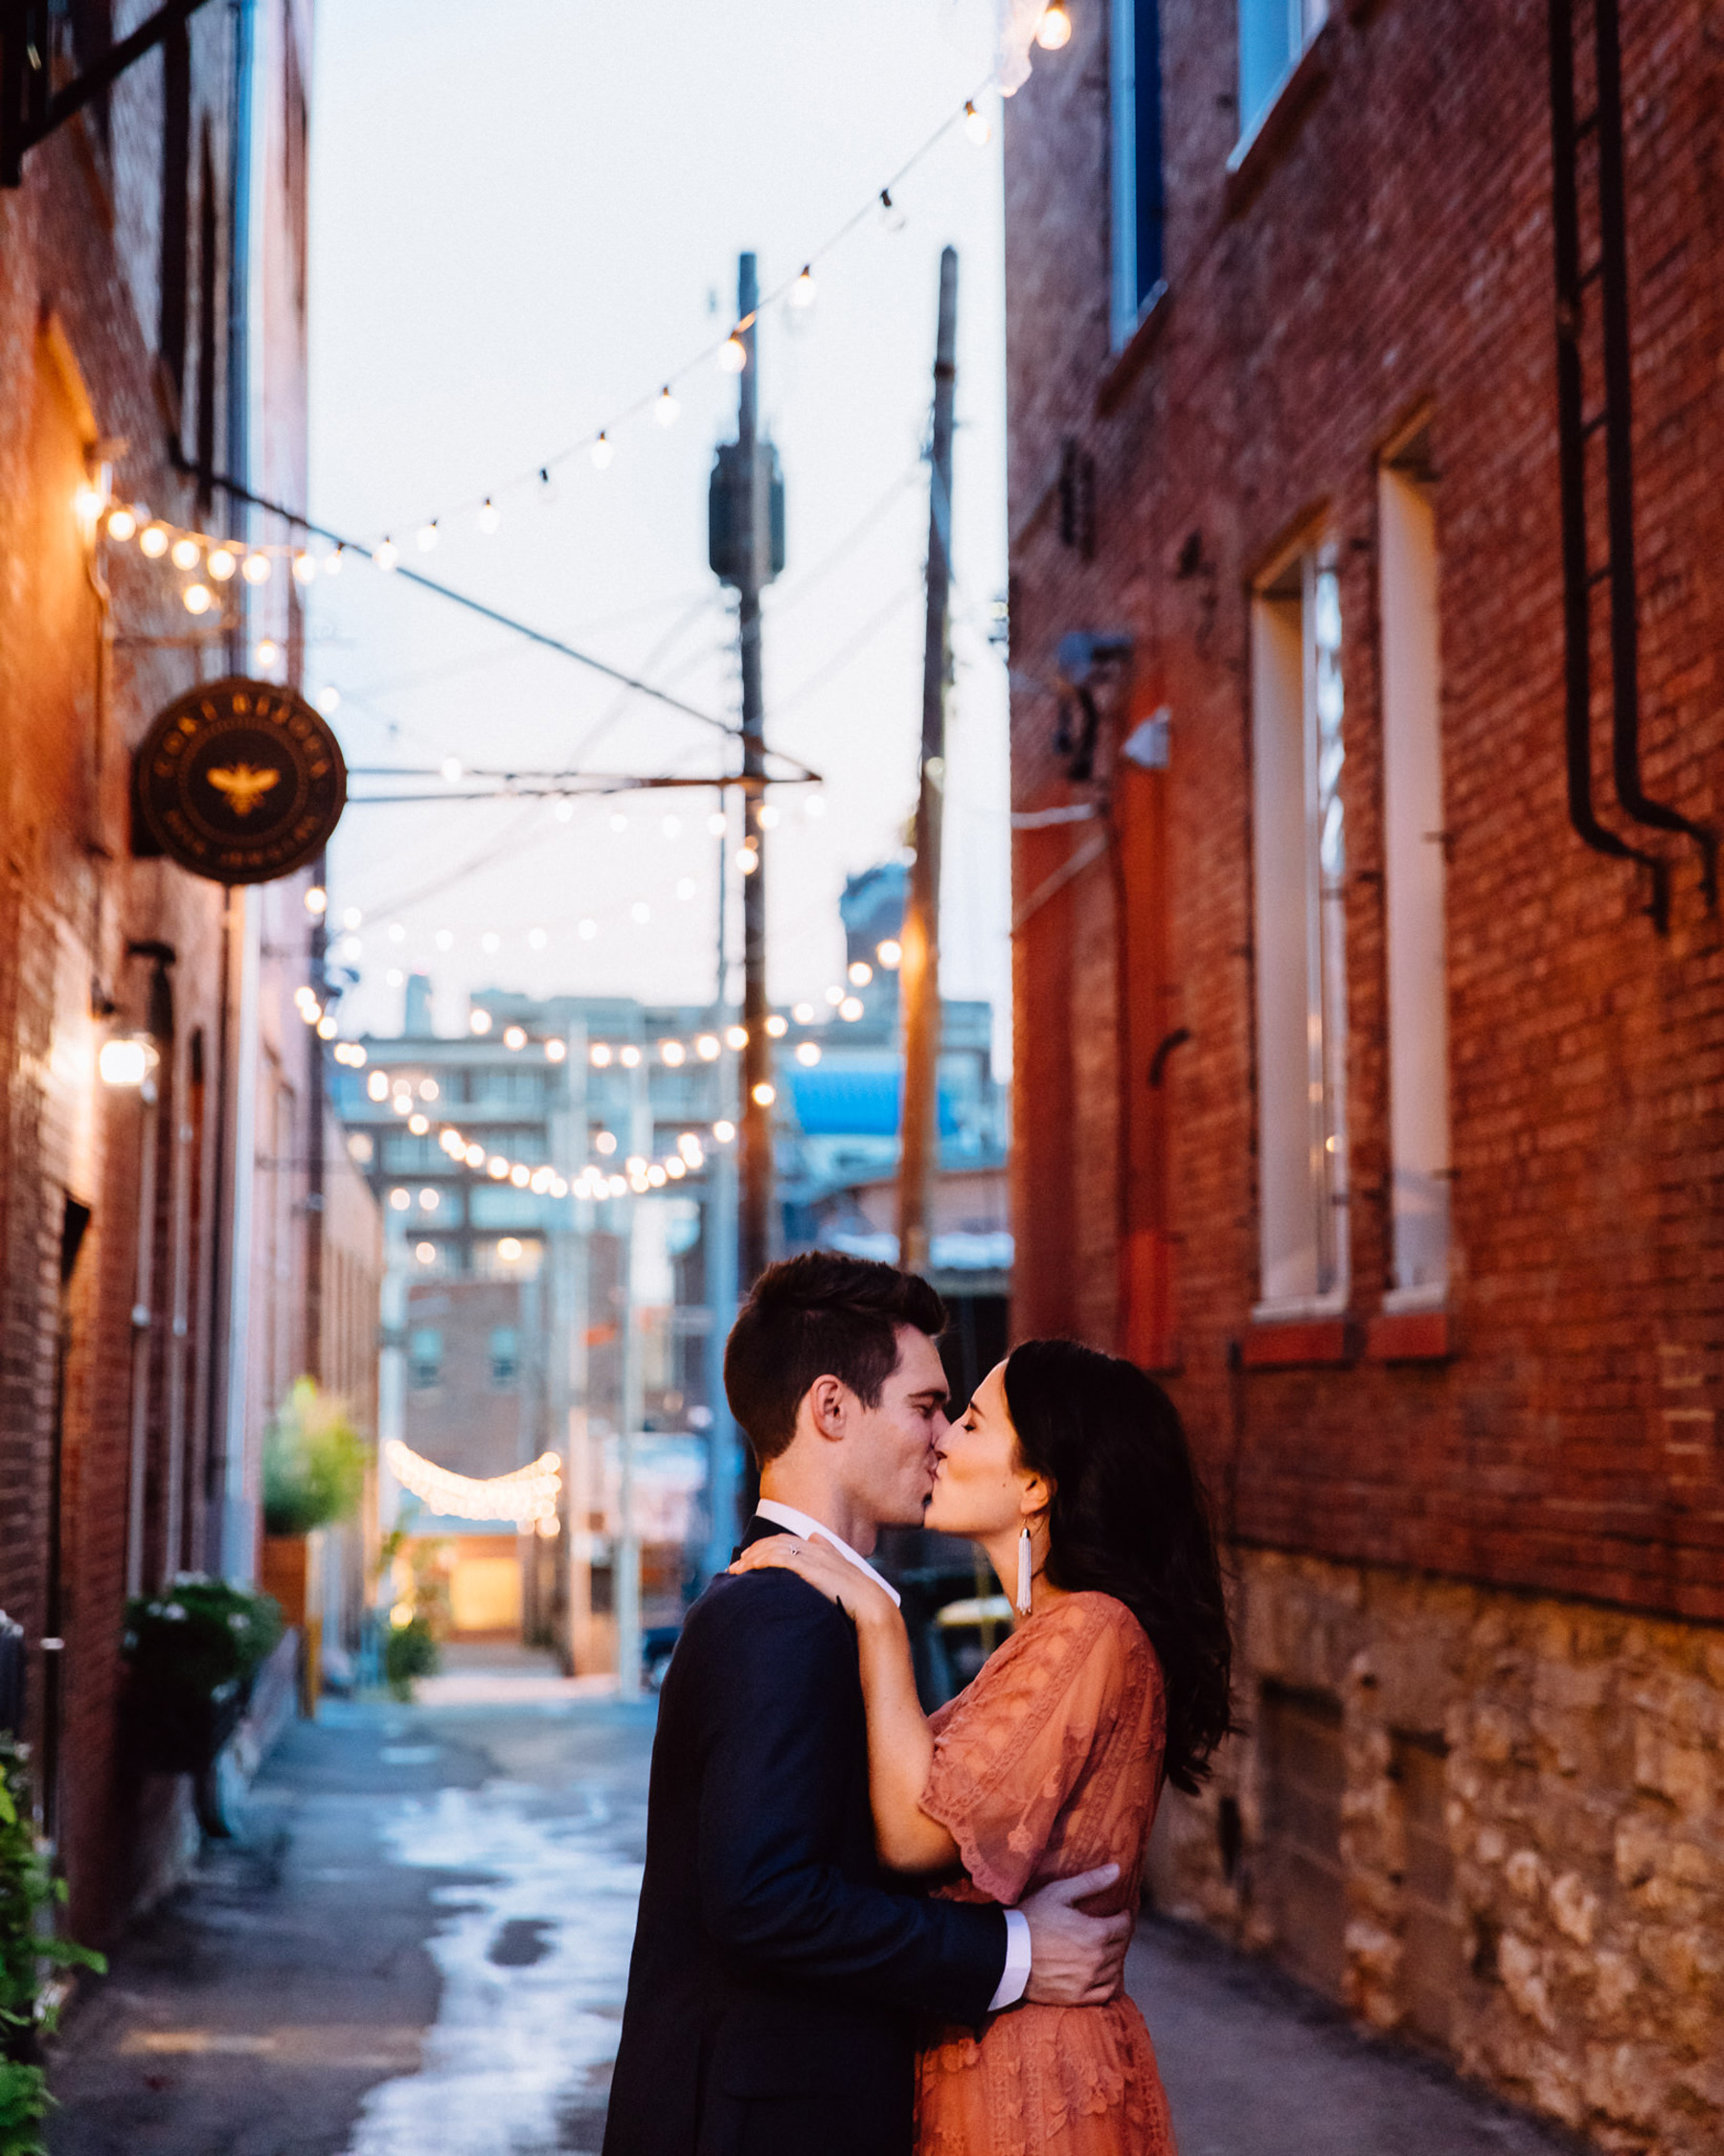 167_Crossroads Engagement Session Kansas City_Kindling Wedding Photography.JPG